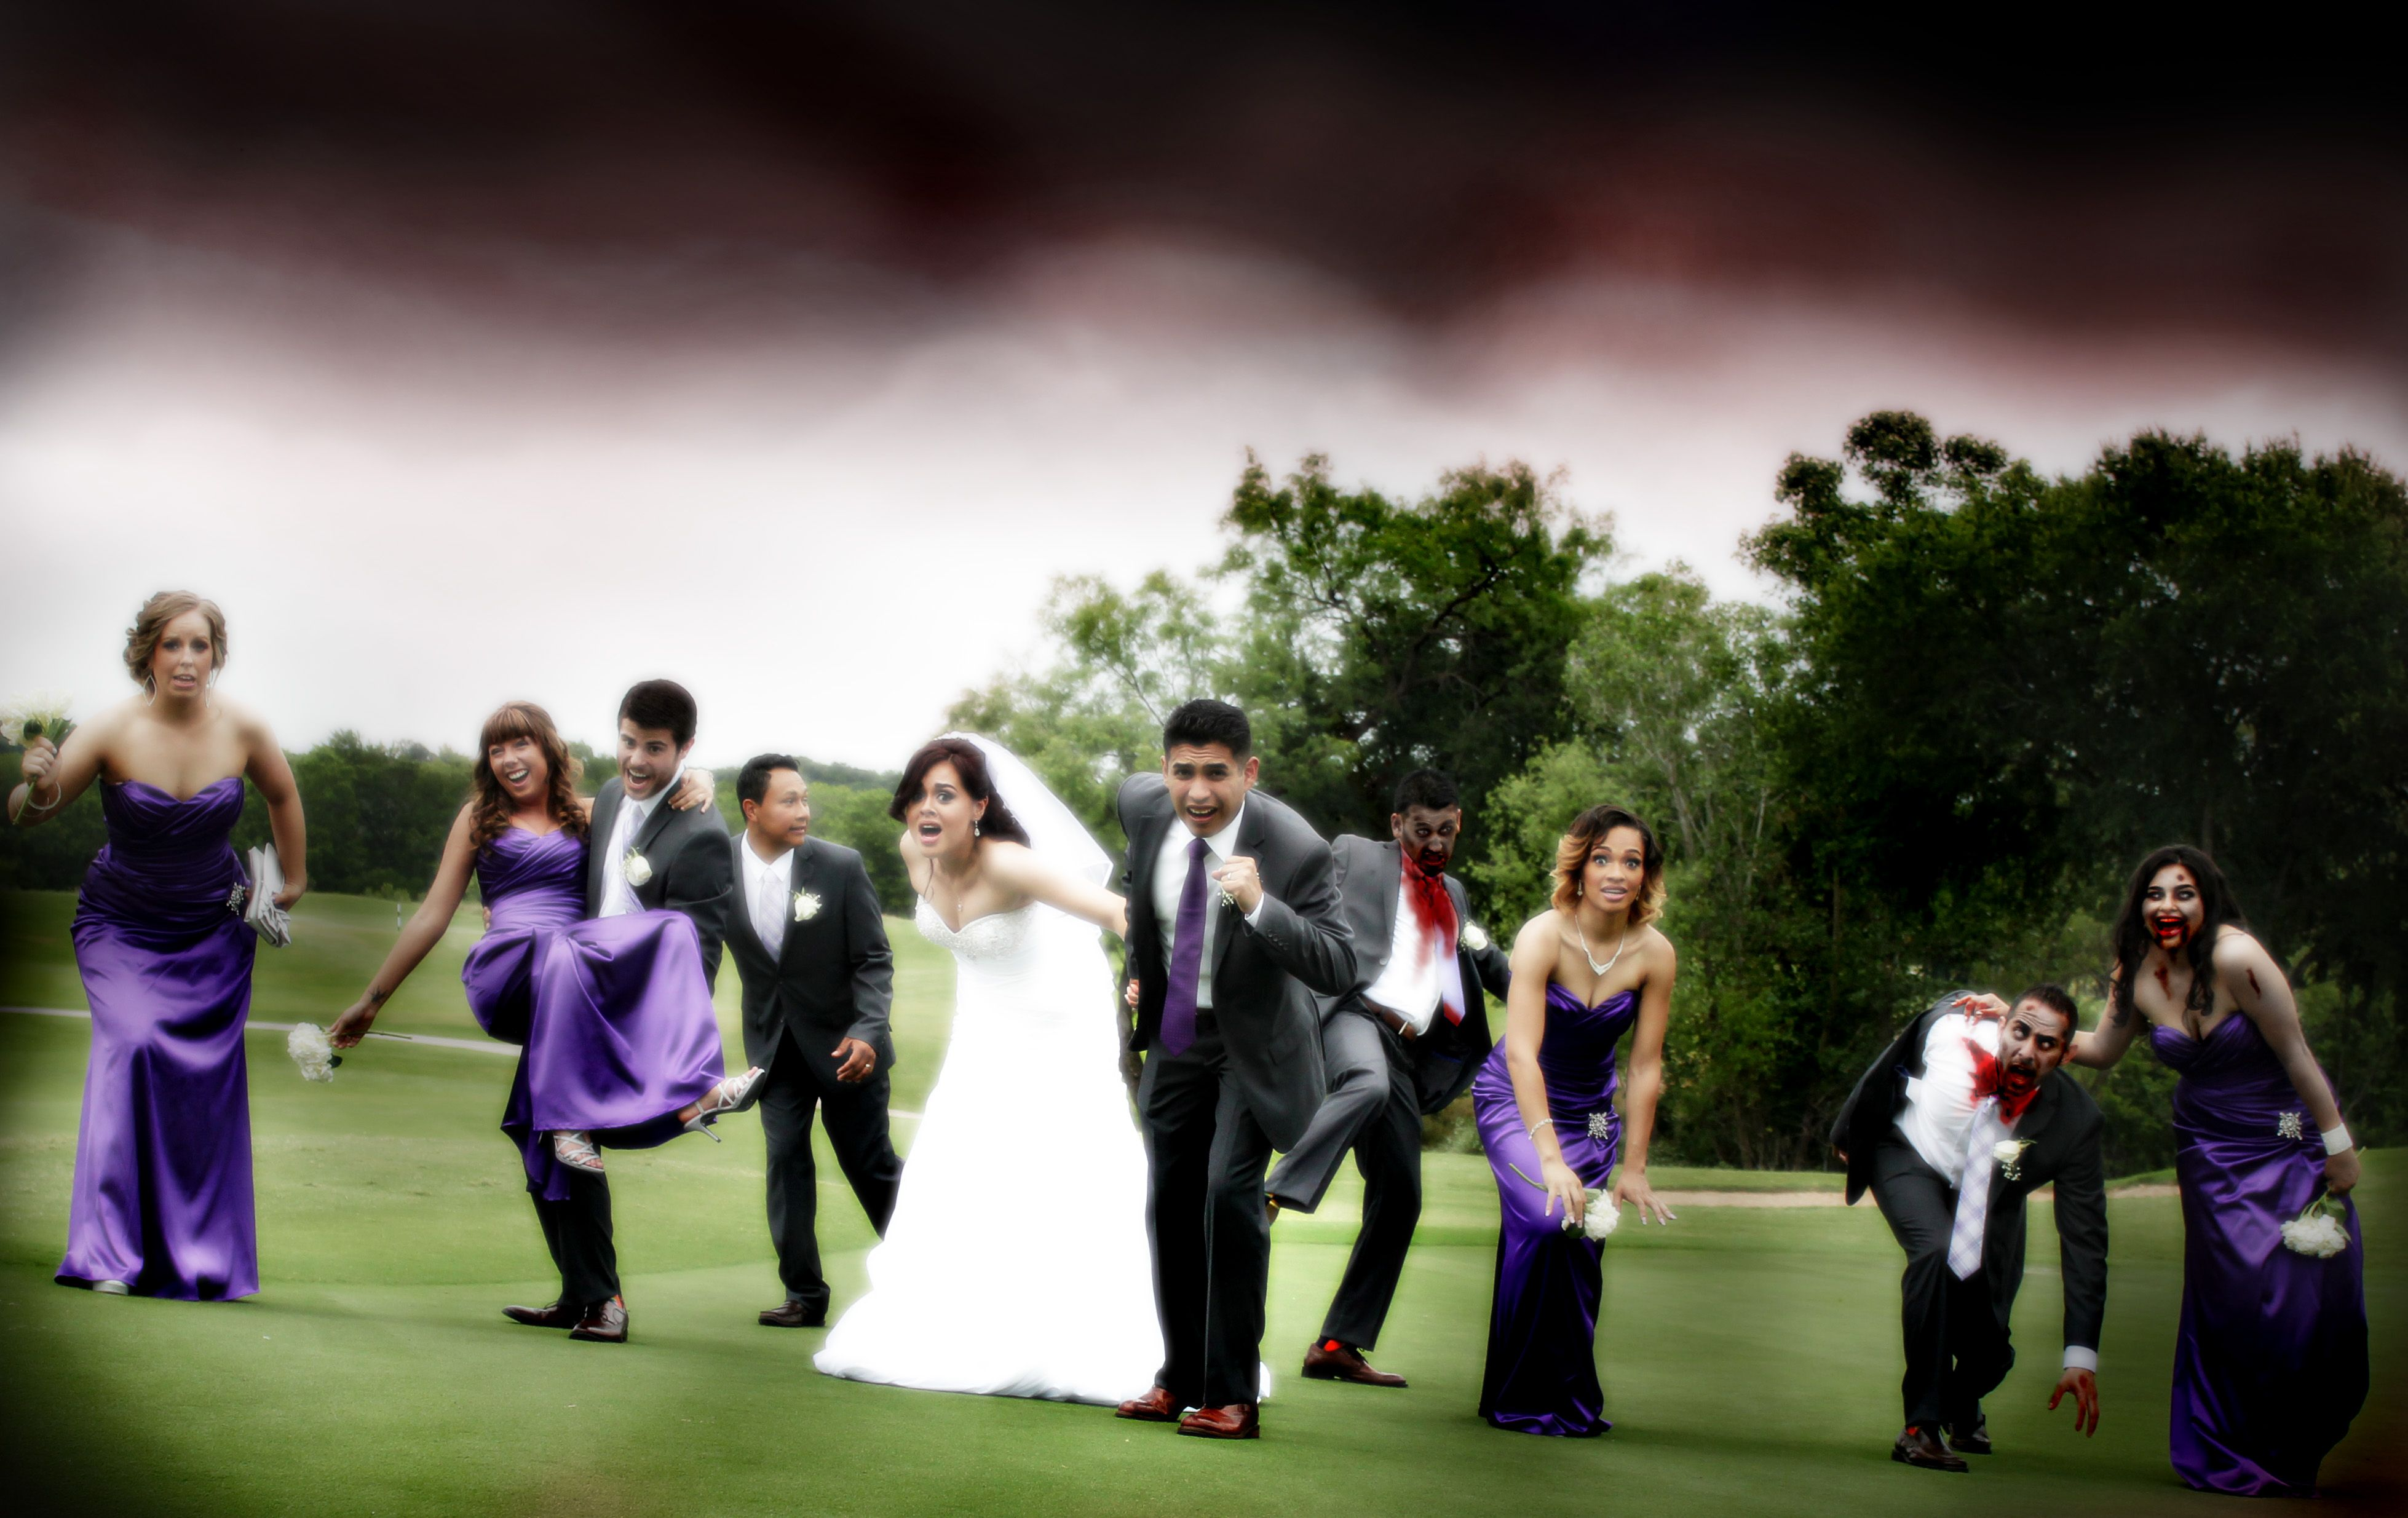 Zombie Wedding Party Cathy S Photography Pinterest